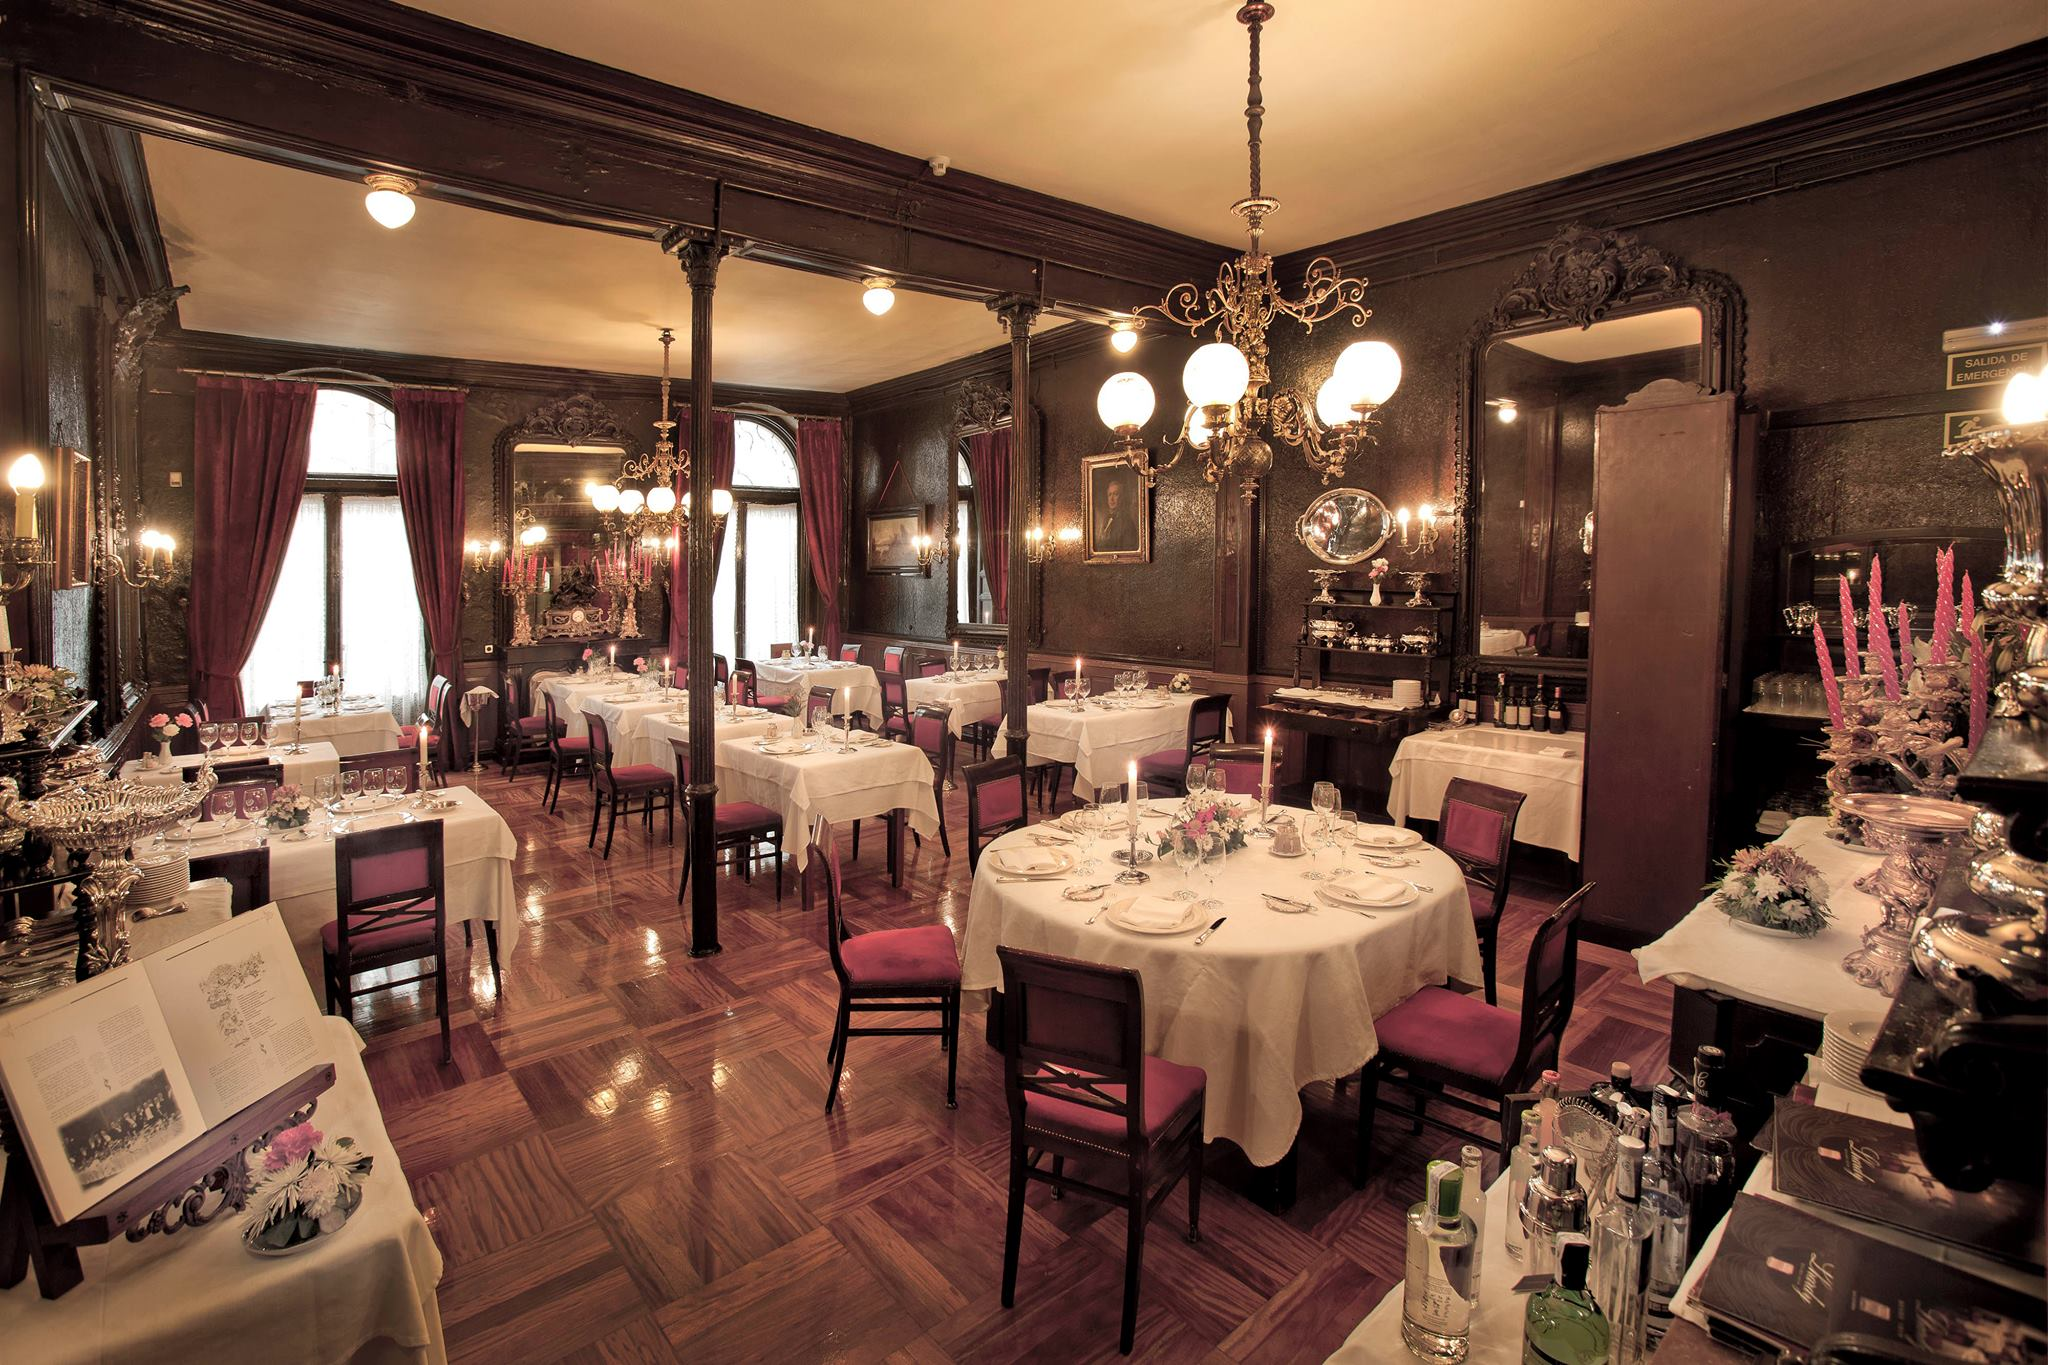 lHardy restaurant in Madrid